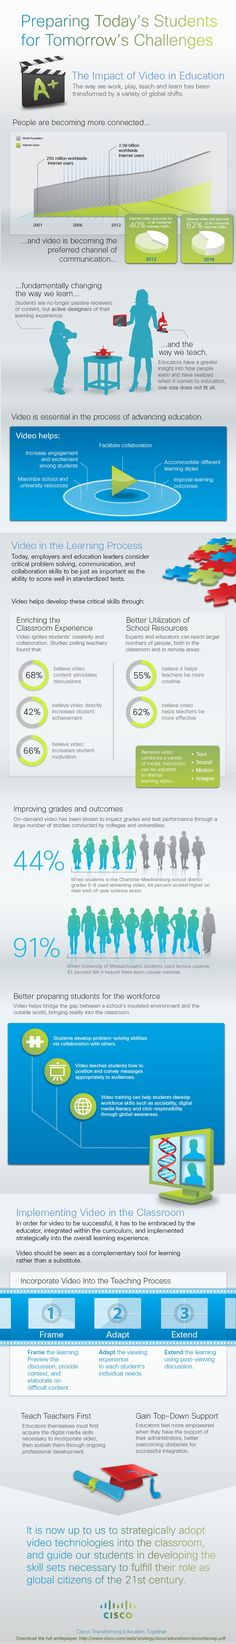 Inphographic: The Impact of Video In Education